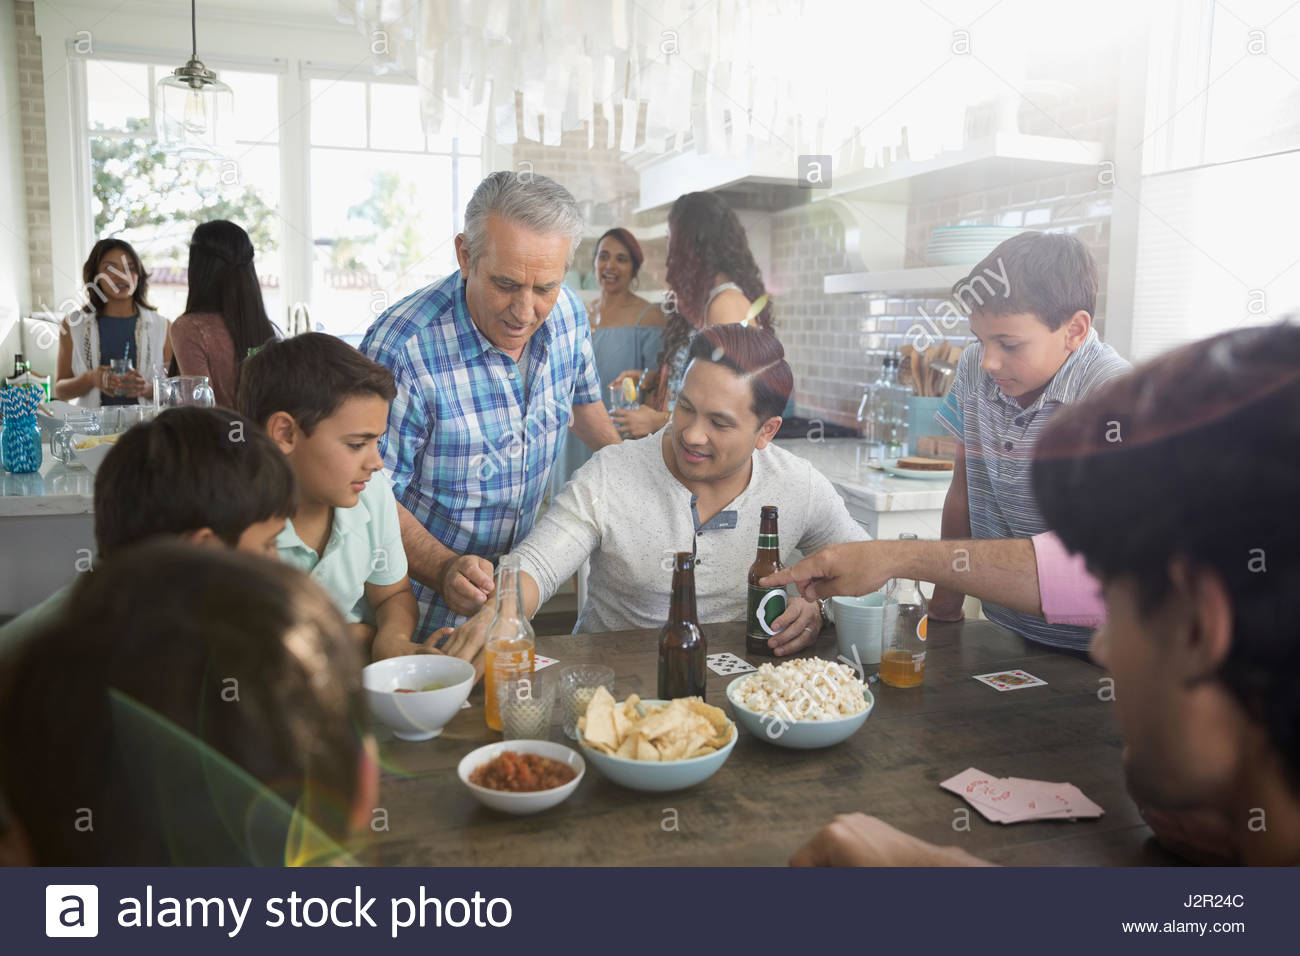 Multi-generation family playing cards, eating and drinking at beach house kitchen table - Stock Image